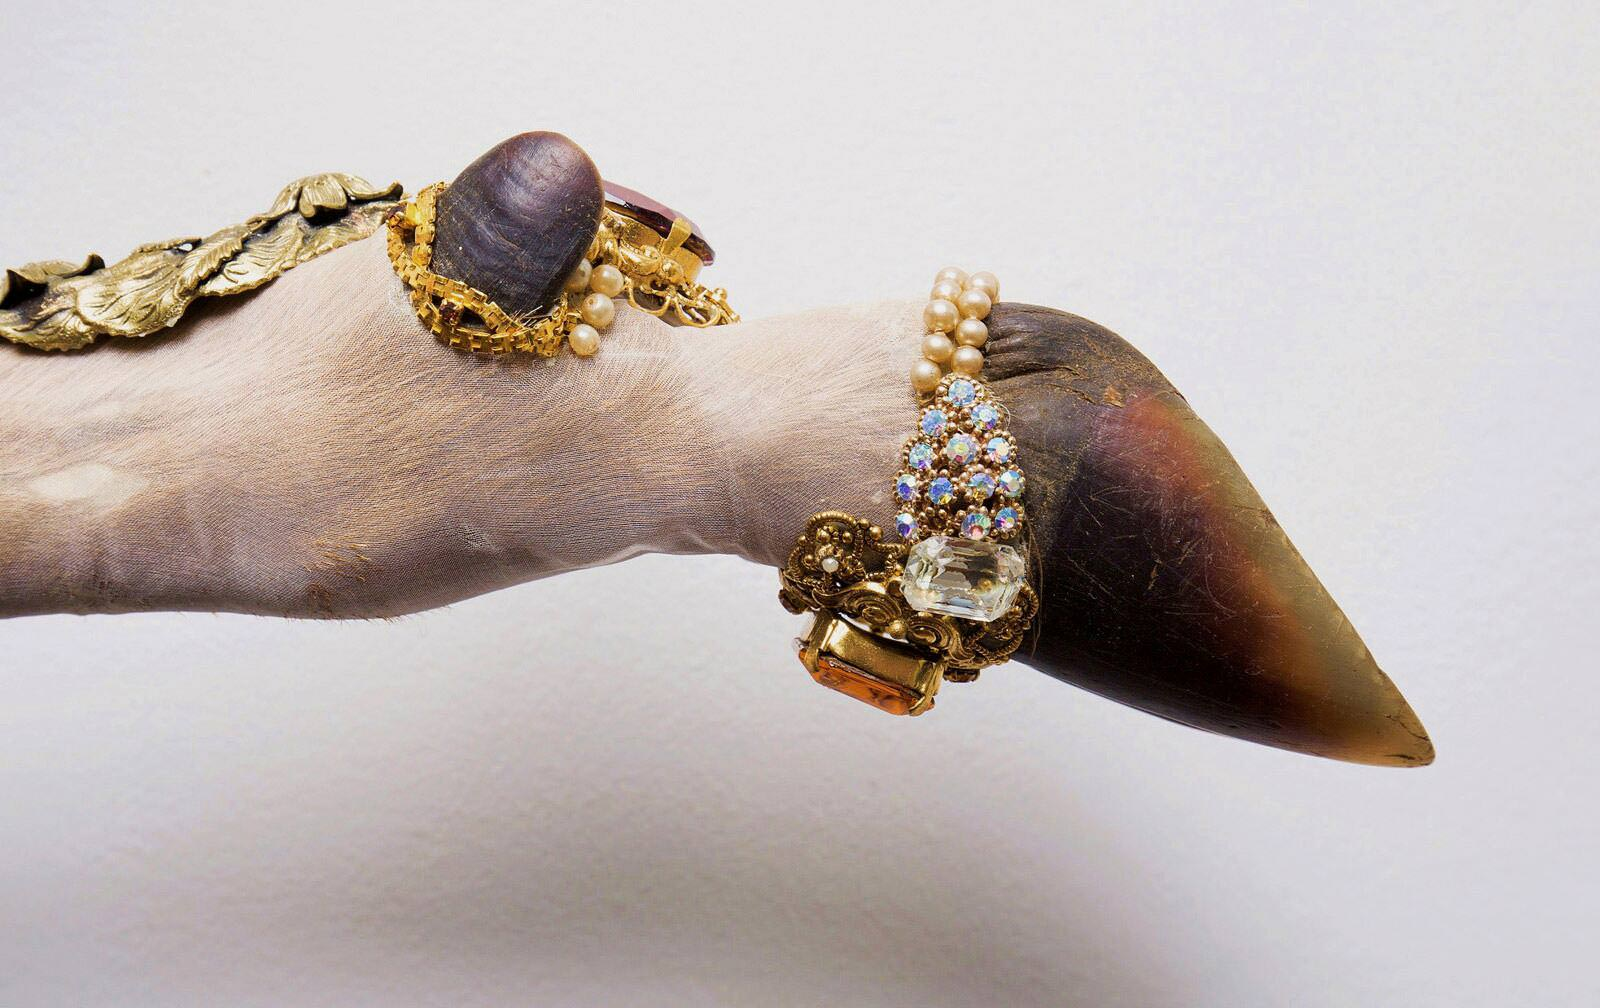 Angela Singer  Phantom Limb (Relic series) , 2015 (detail) Recycled vintage taxidermy deer leg, gems, mixed media 80 x 370 x 65 mm [Private collection]   _______